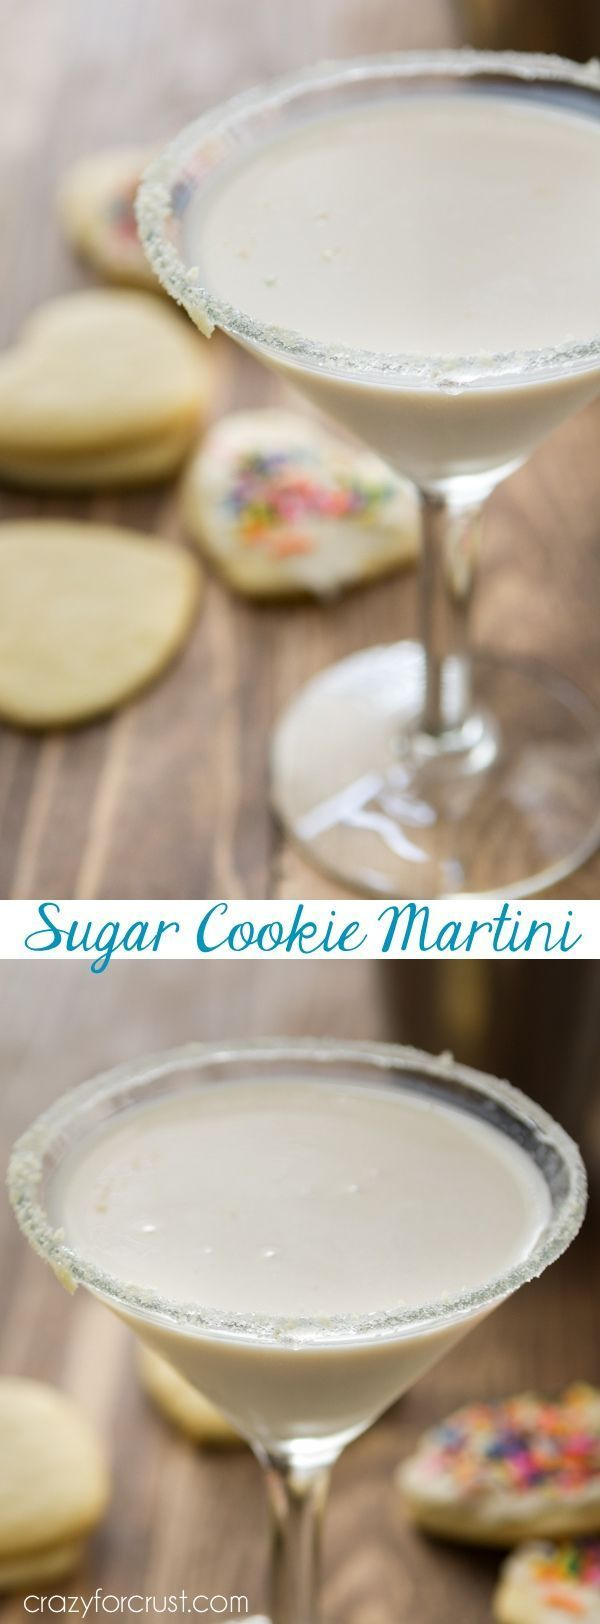 This Sugar Cookie Martini is the perfect signature dessert cocktail for any party. Only 3 ingredients and it tastes like a sugar cookie!   -Made this but used snickerdoodle creamer because it was all I could find.  Fucking delicious.